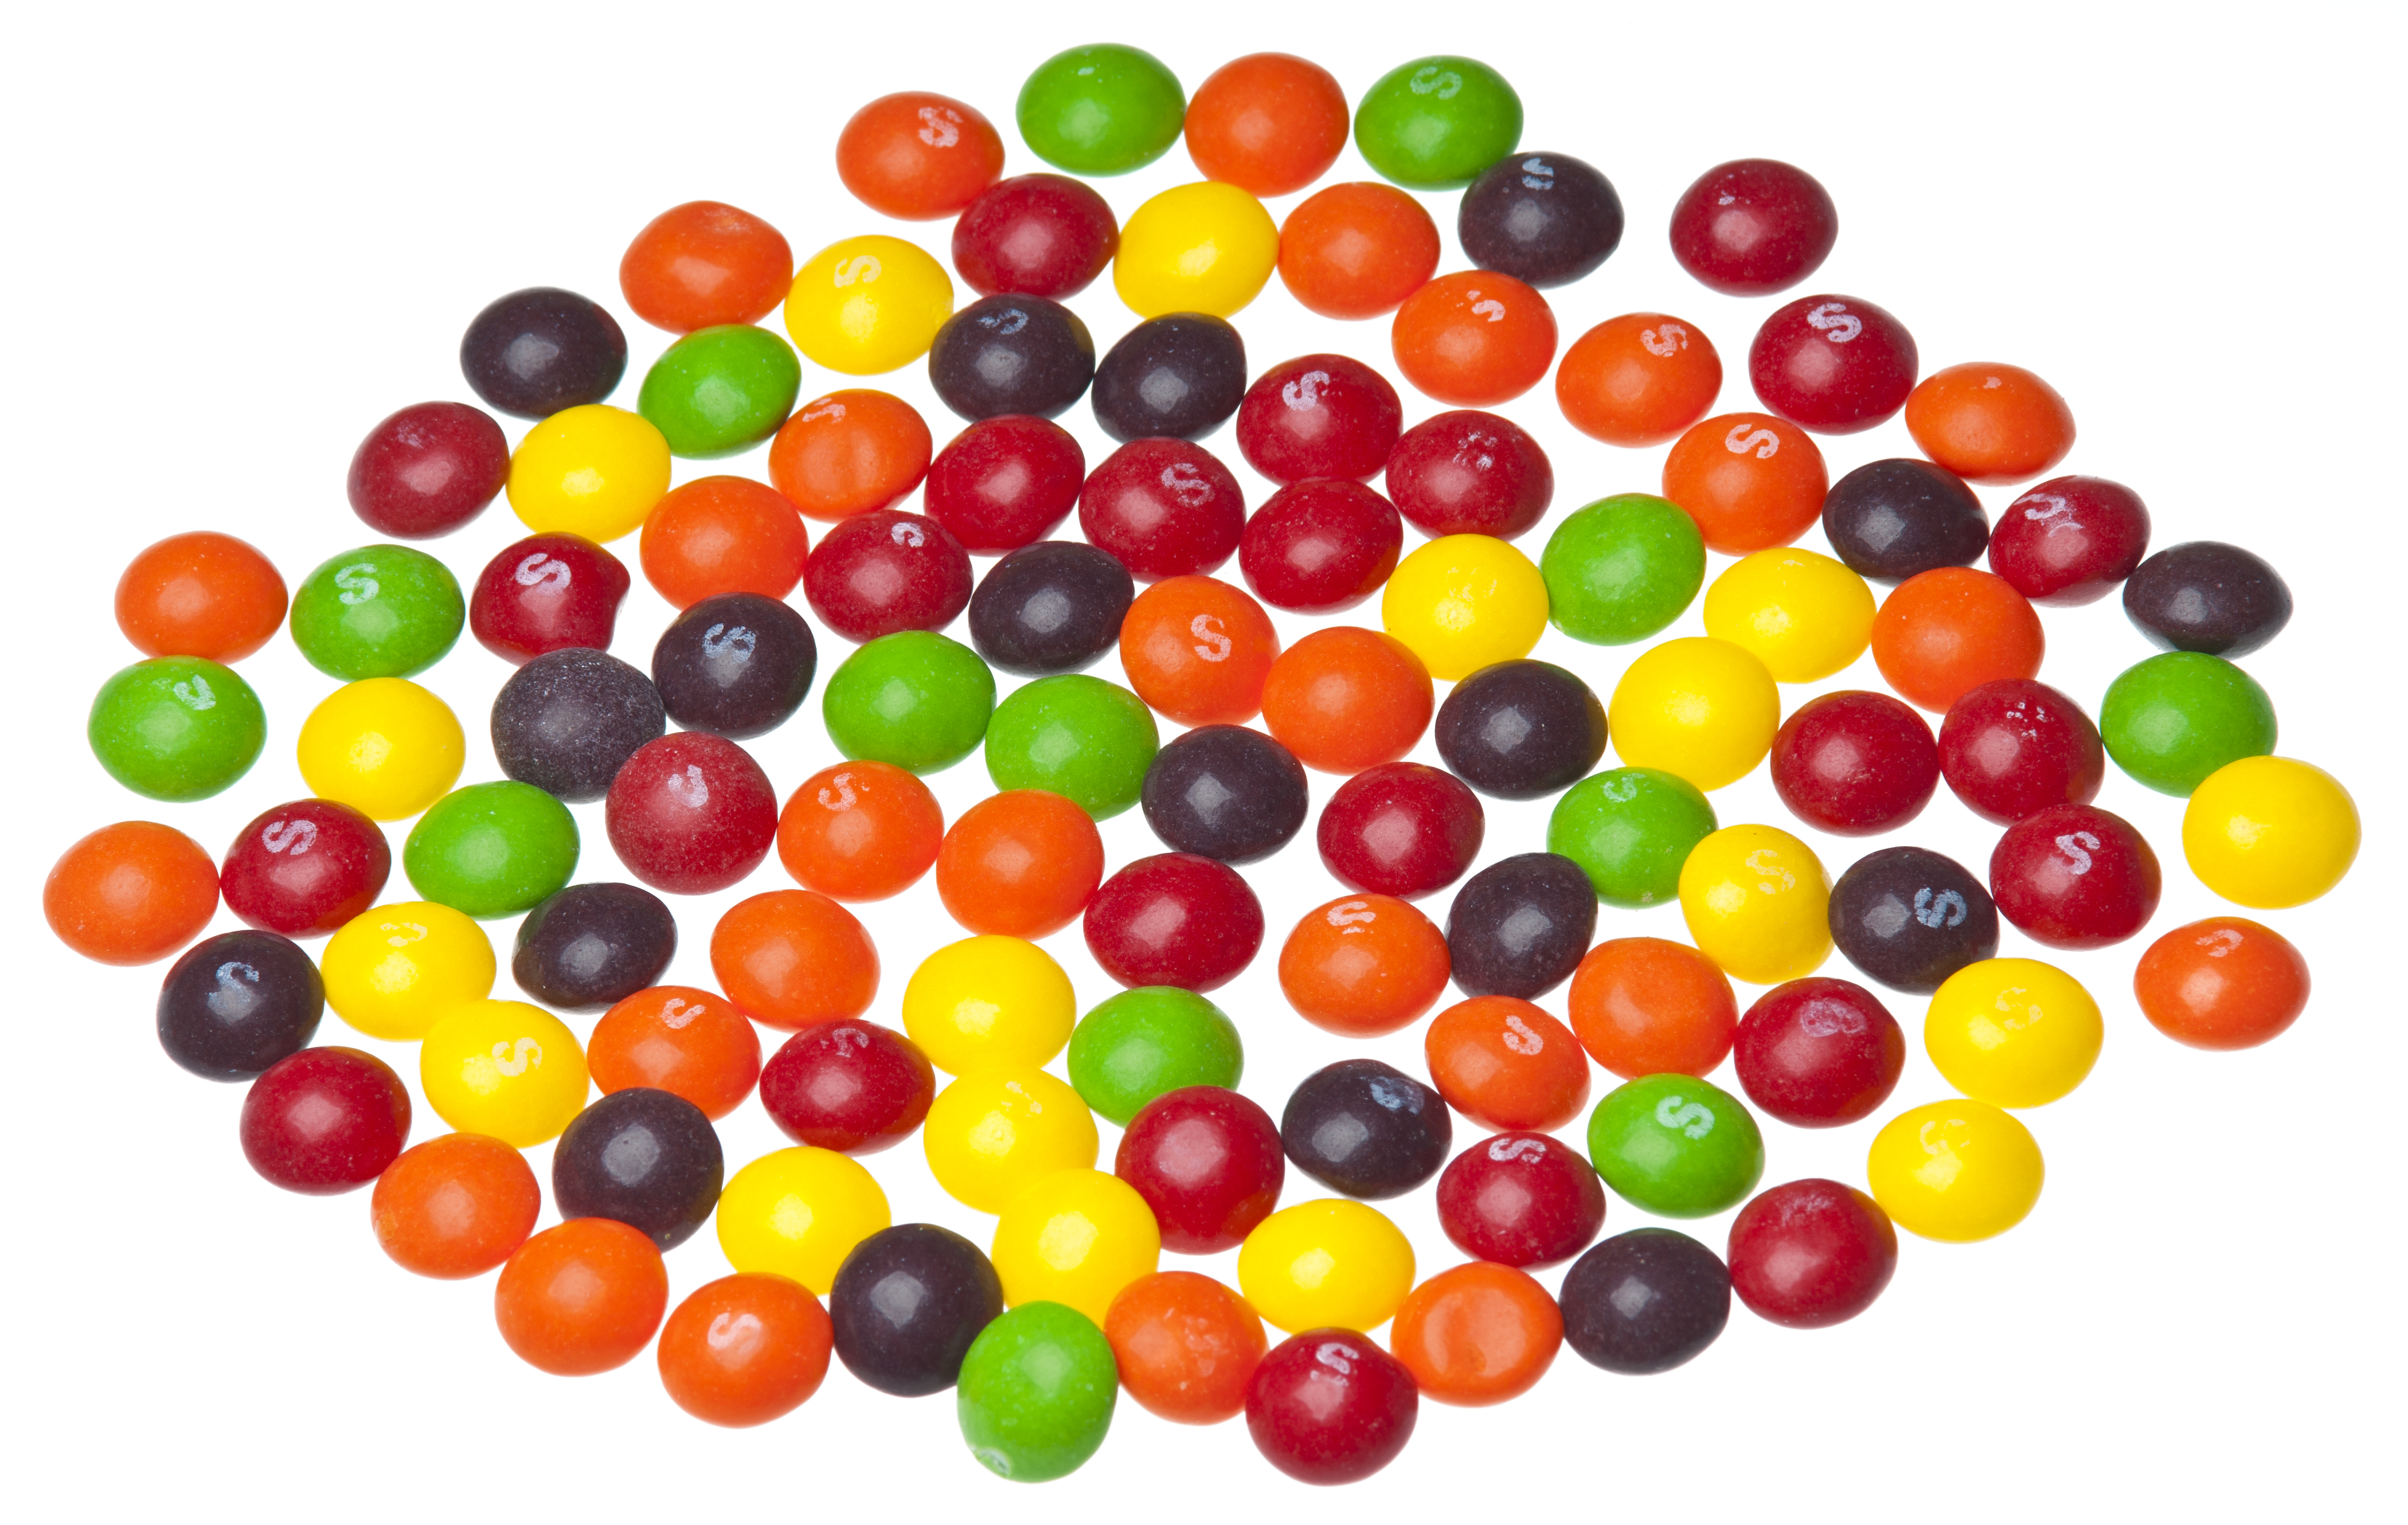 Skittles Bag Png me a Bag of Skittles